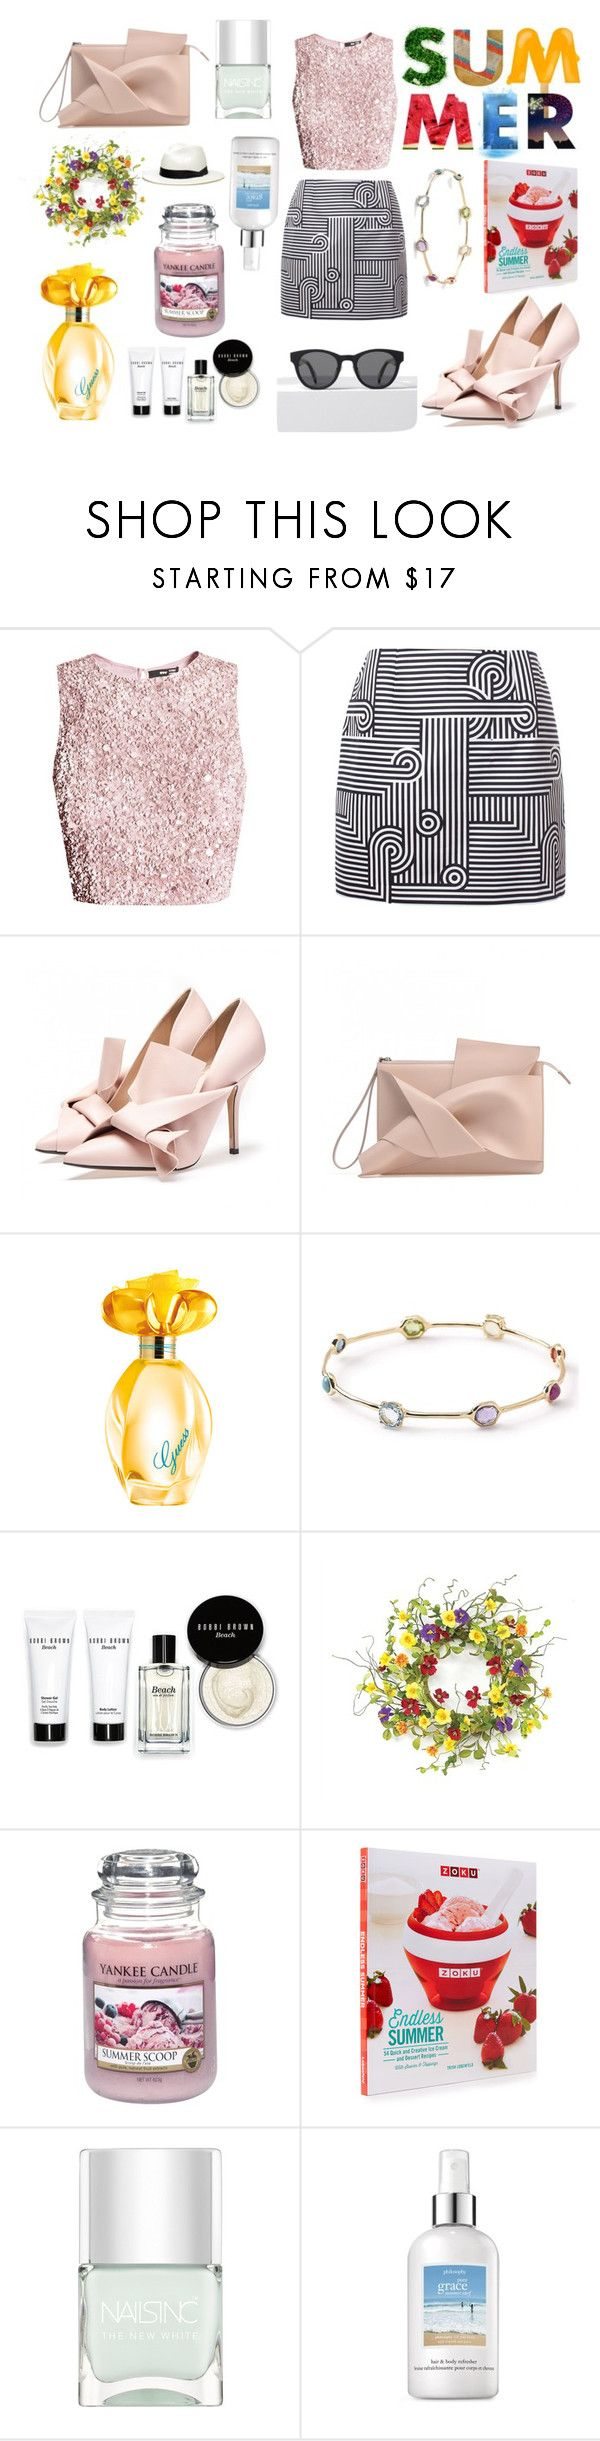 """""""Summer"""" by i-am-tatia ❤ liked on Polyvore featuring Victoria, Victoria Beckham, GUESS, Ippolita, Bobbi Brown Cosmetics, Yankee Candle, Nails Inc., philosophy, rag & bone, love and sundance"""